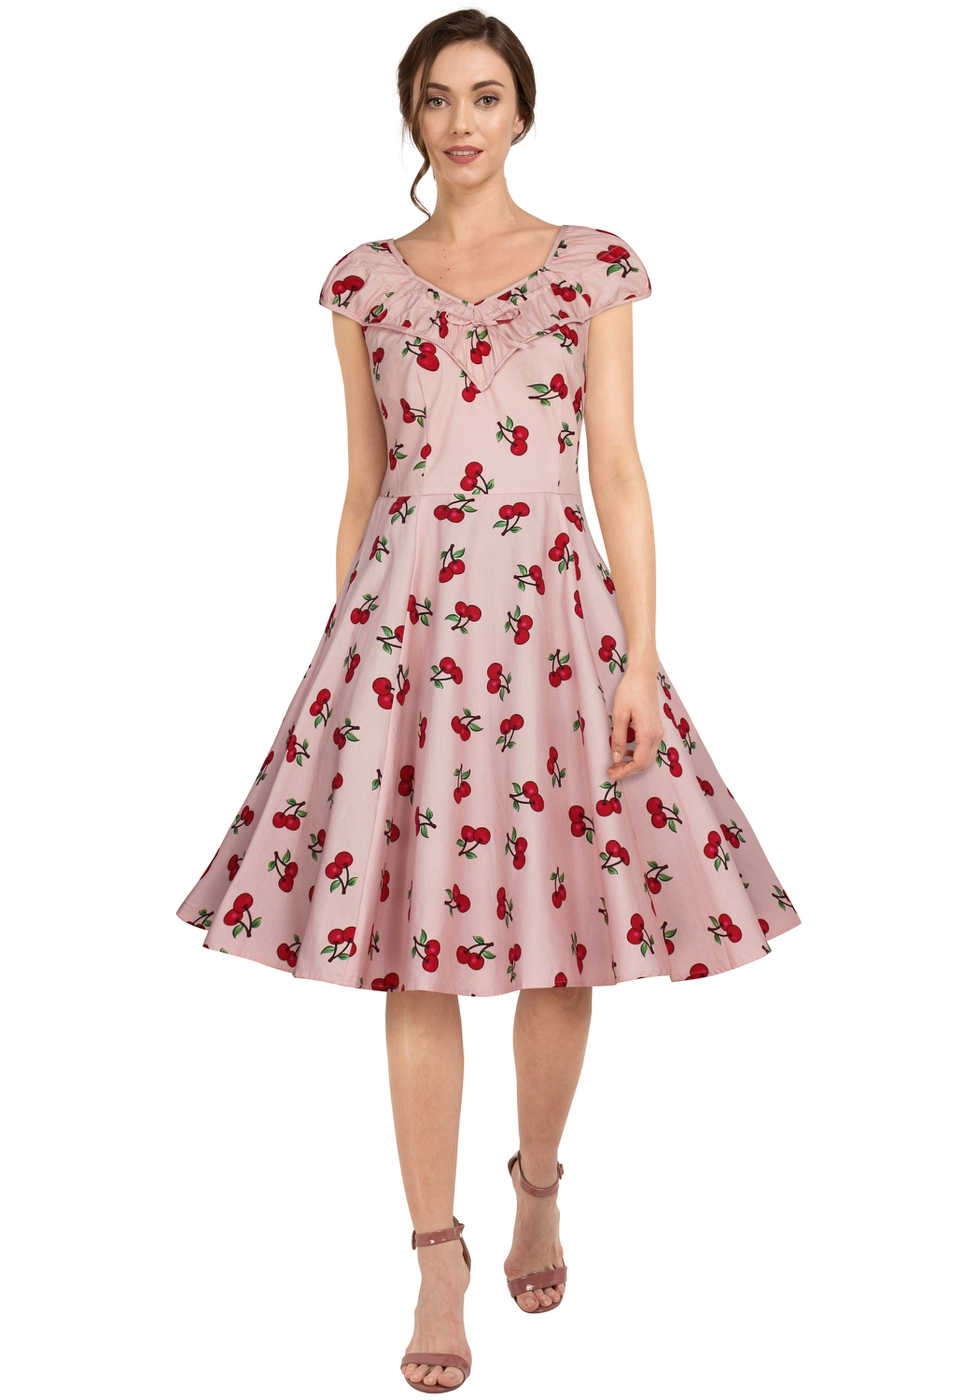 Pink/Cherry Ruffle Retro Dress - orangeshine.com